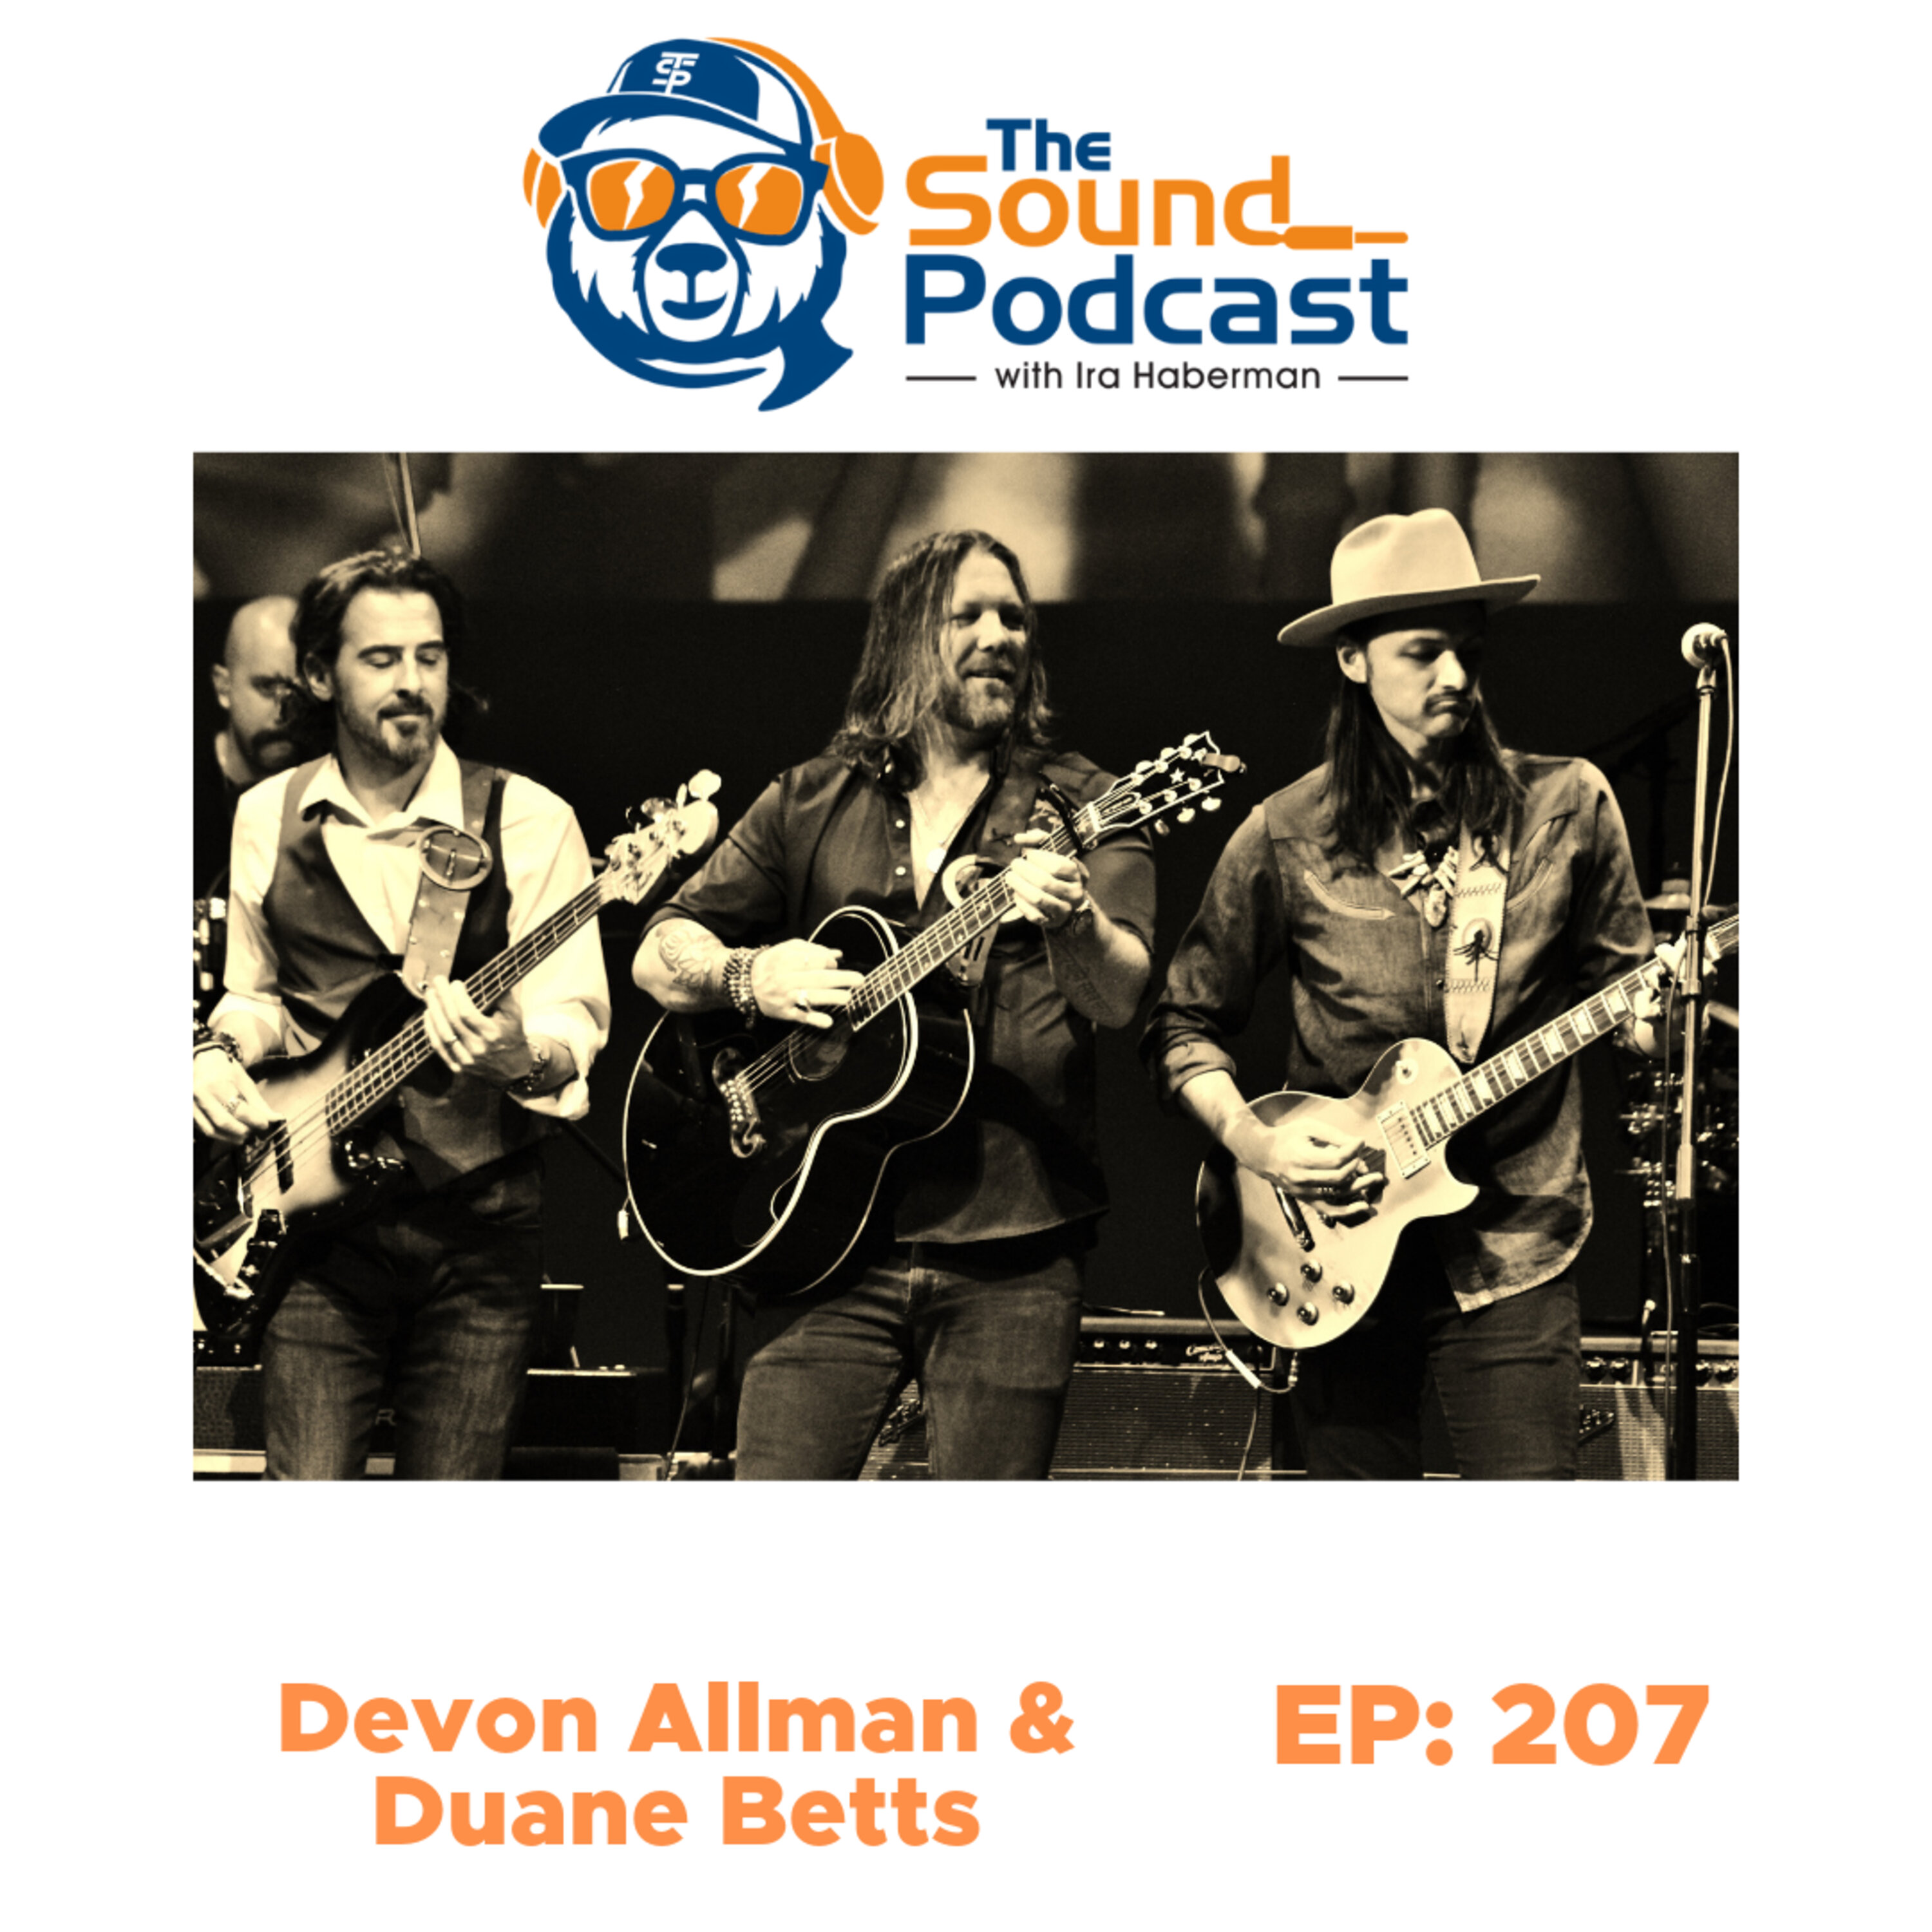 Devon Allman & Duane Betts